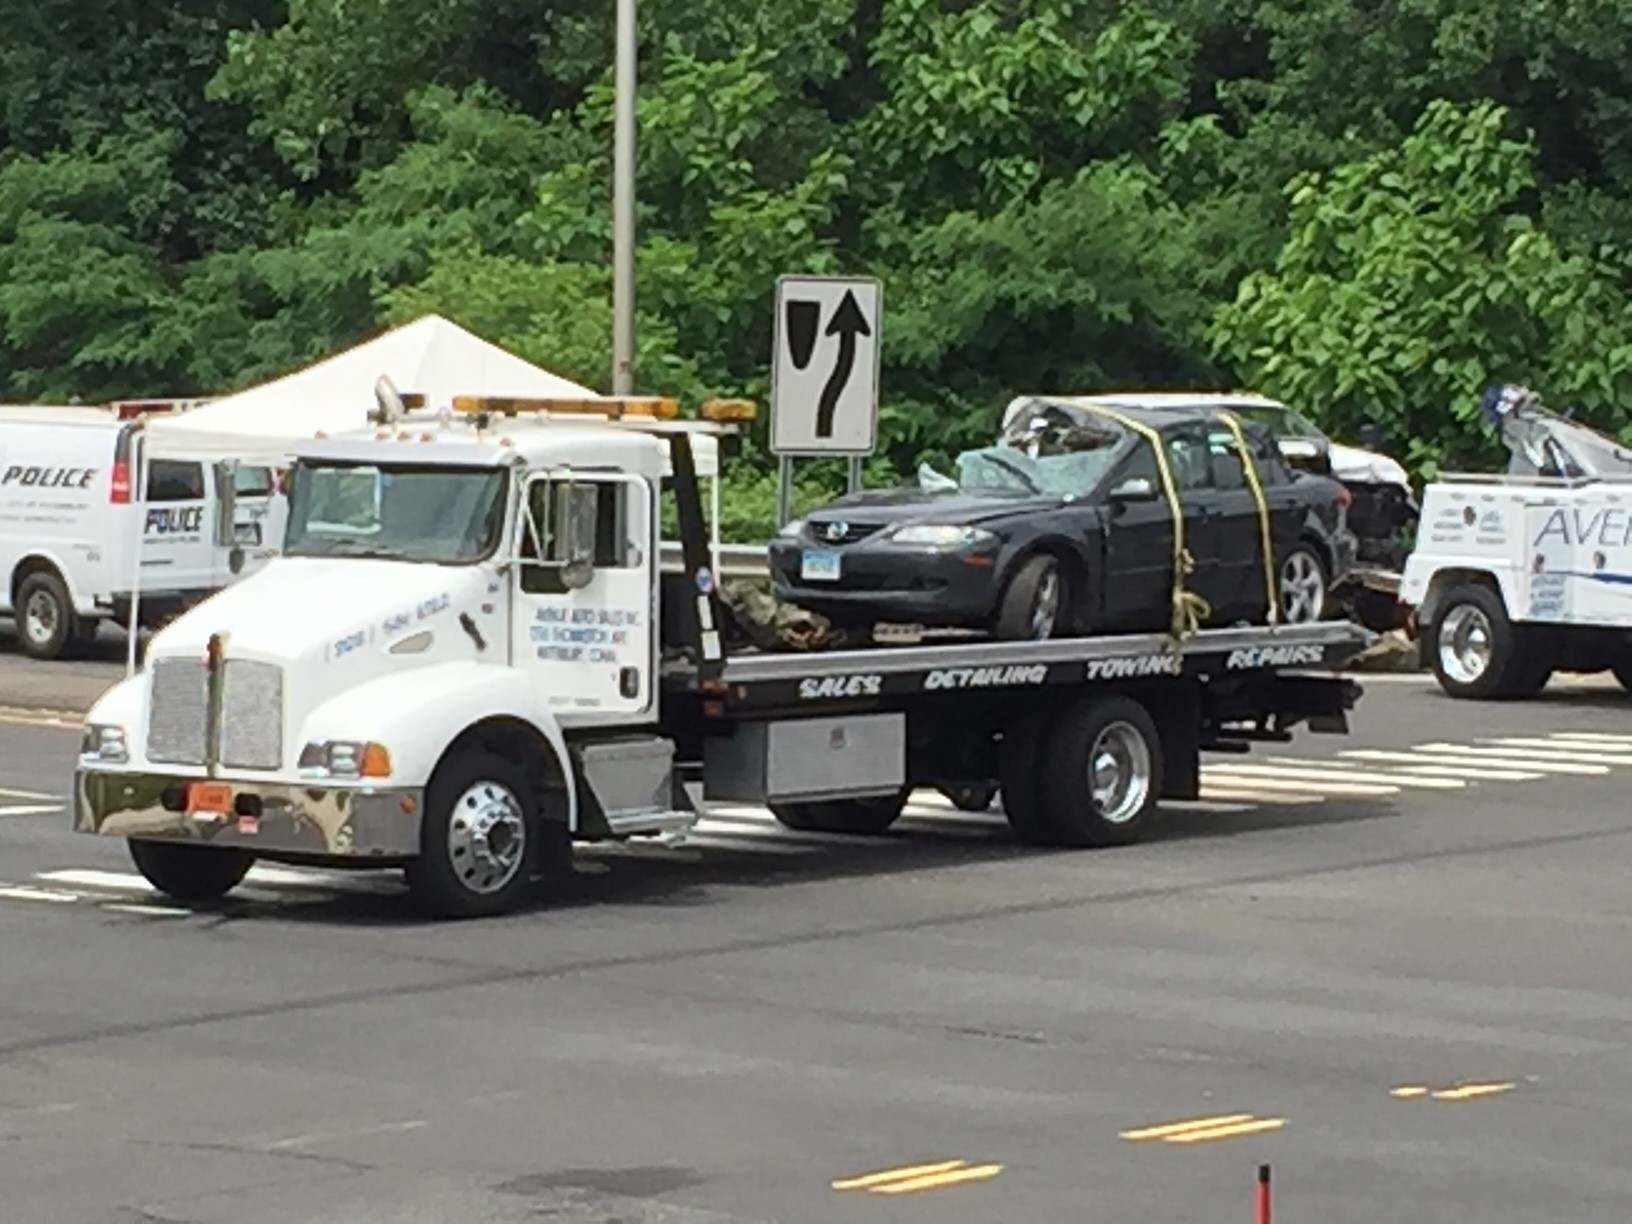 Two dead in waterbury crash hartford courant for Department of motor vehicles waterbury ct